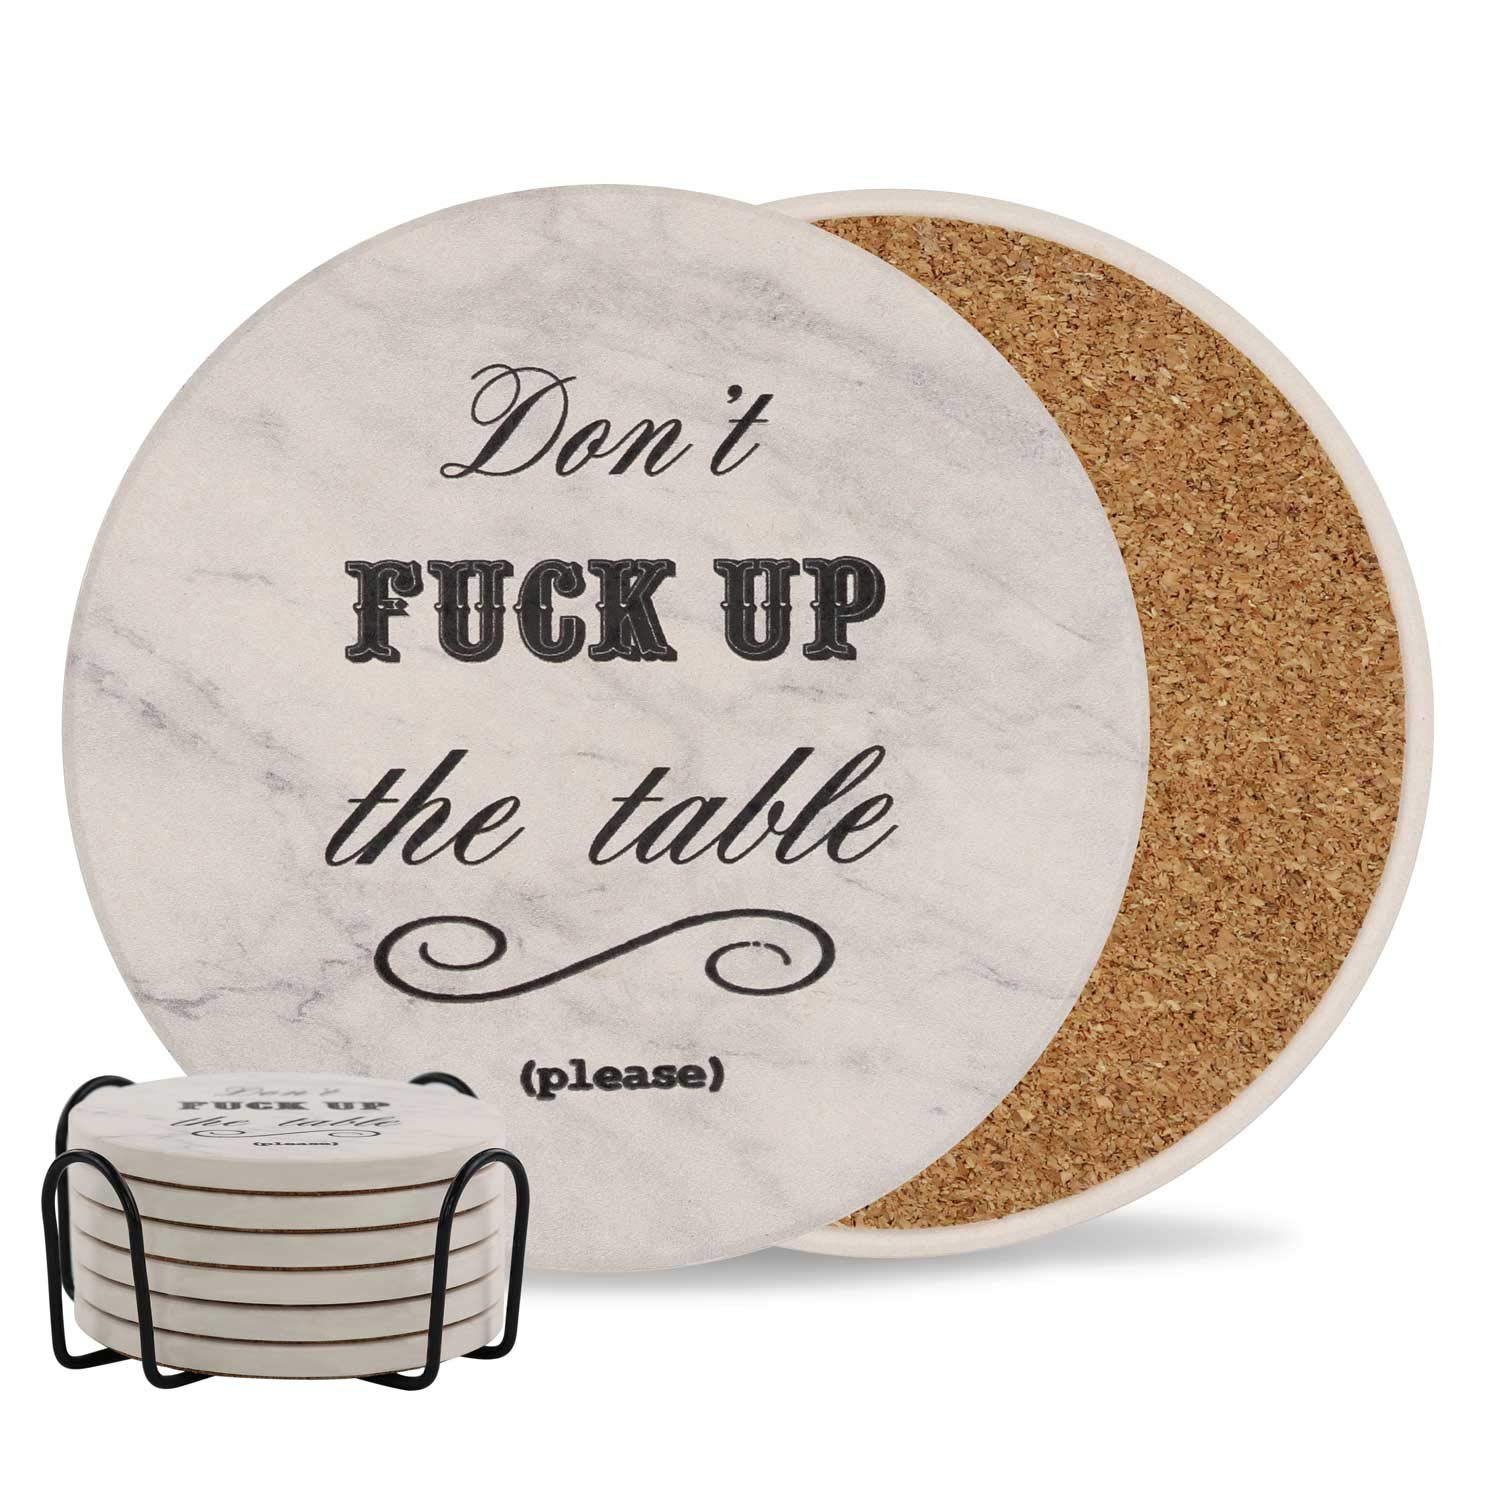 Coasters for Drinks | Absorbent Drink Coaster (6-Piece Set with Holder) | Housewarming Hostess Gifts, Man Cave House Warming Presents Decor, Wedding Registry, Living Room Decorations, Cool Gift Ideas by Ankzon